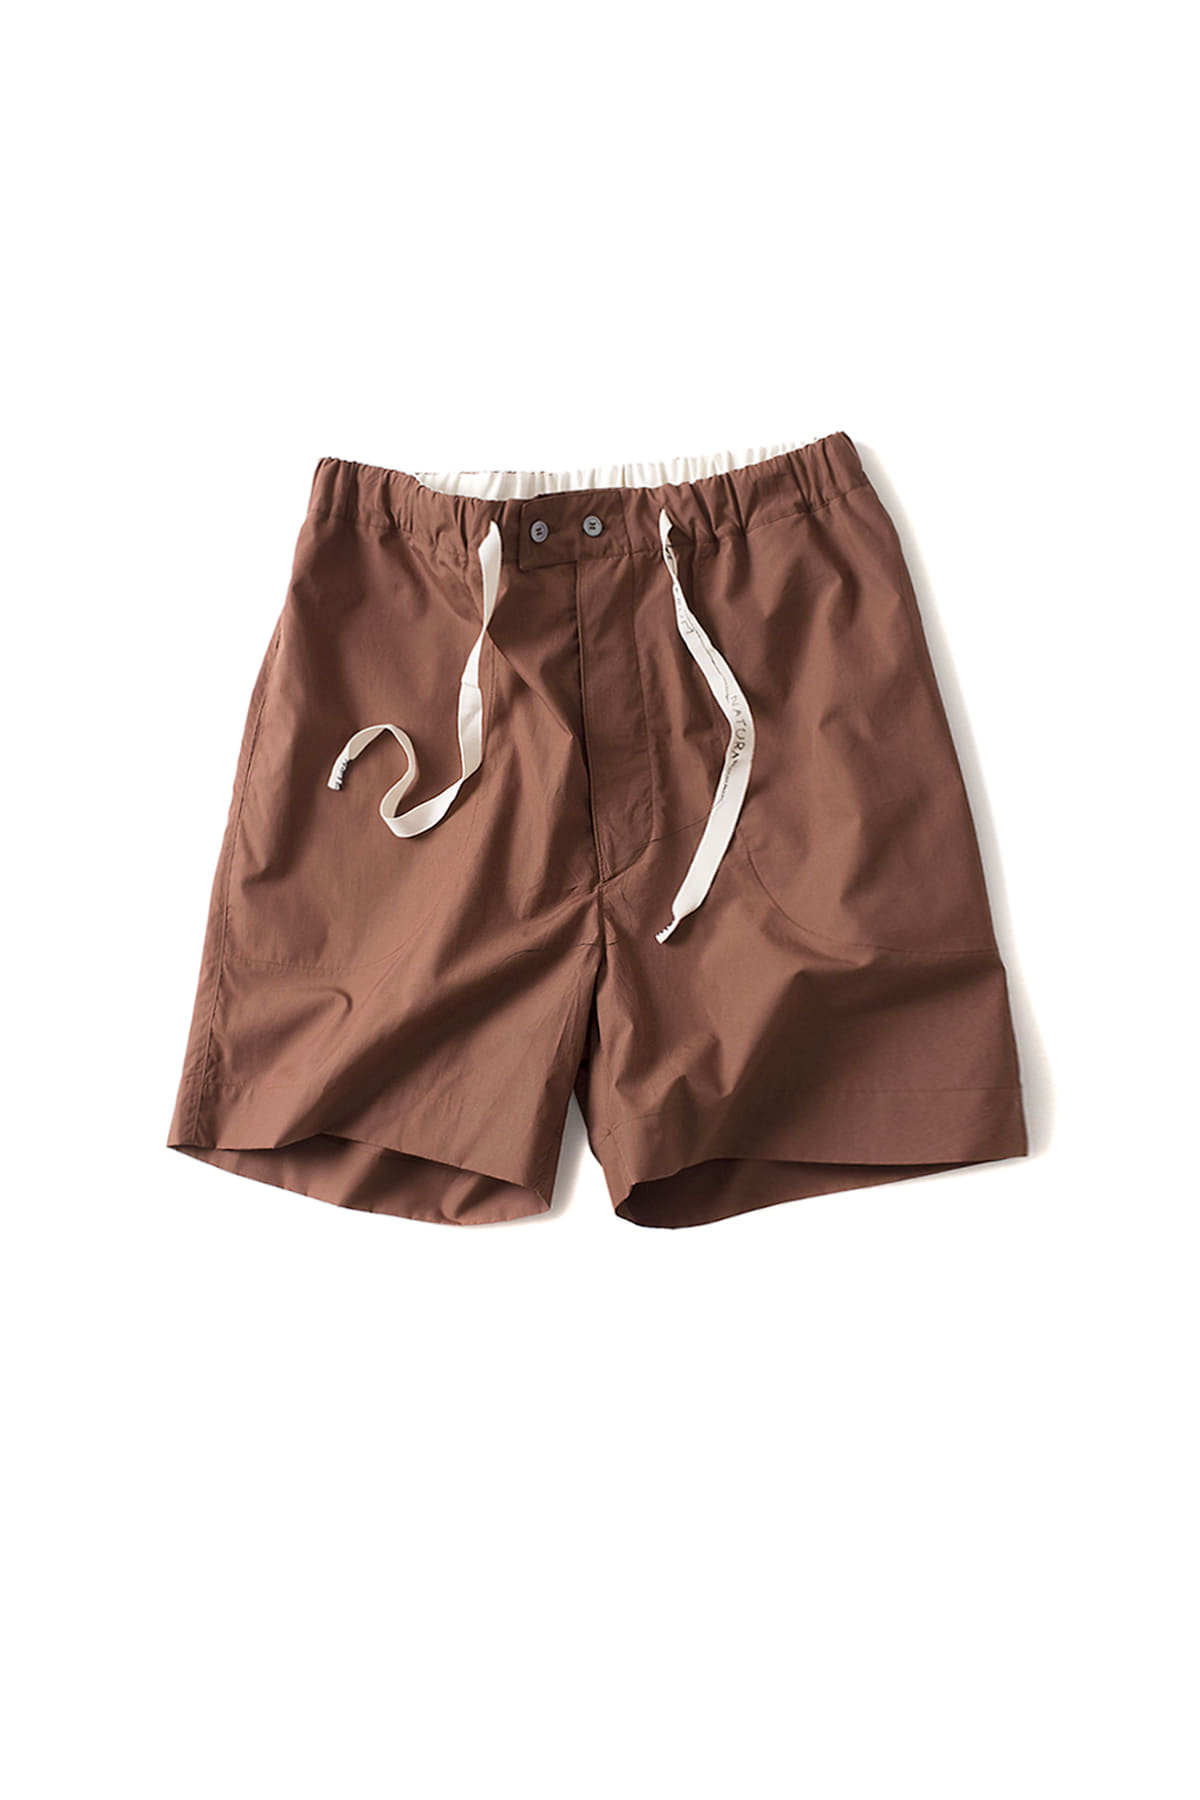 Federico Curradi : Calciante Shorts (Brown)